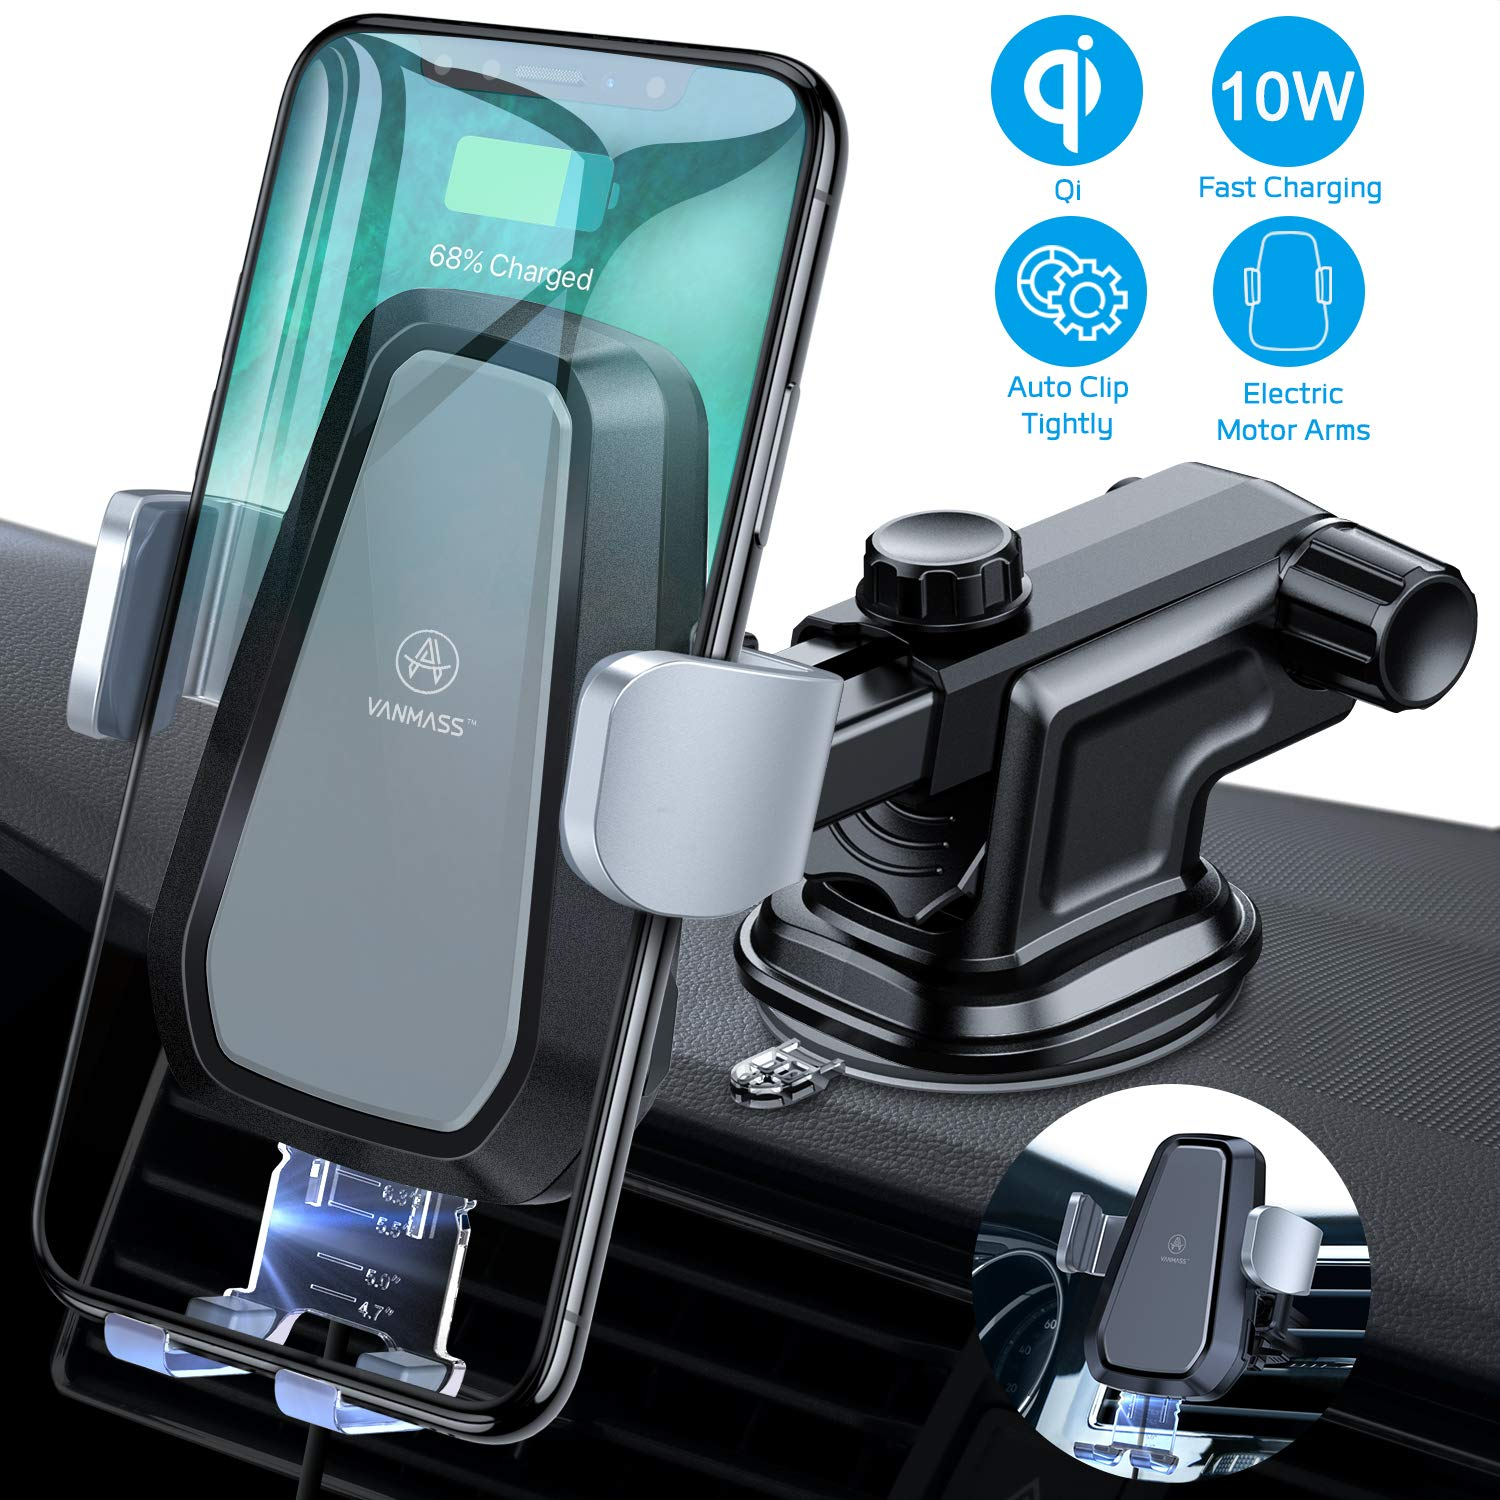 VANMASS Wireless Car Charger Mount, Automatic Clamping Qi 10W 7.5W Fast Charging & 5W Car Mount, Windshield Dashboard Air Vent Phone Holder Compatible with iPhone Xs Max XR 8, Samsung S10 S9 S8 Note 9